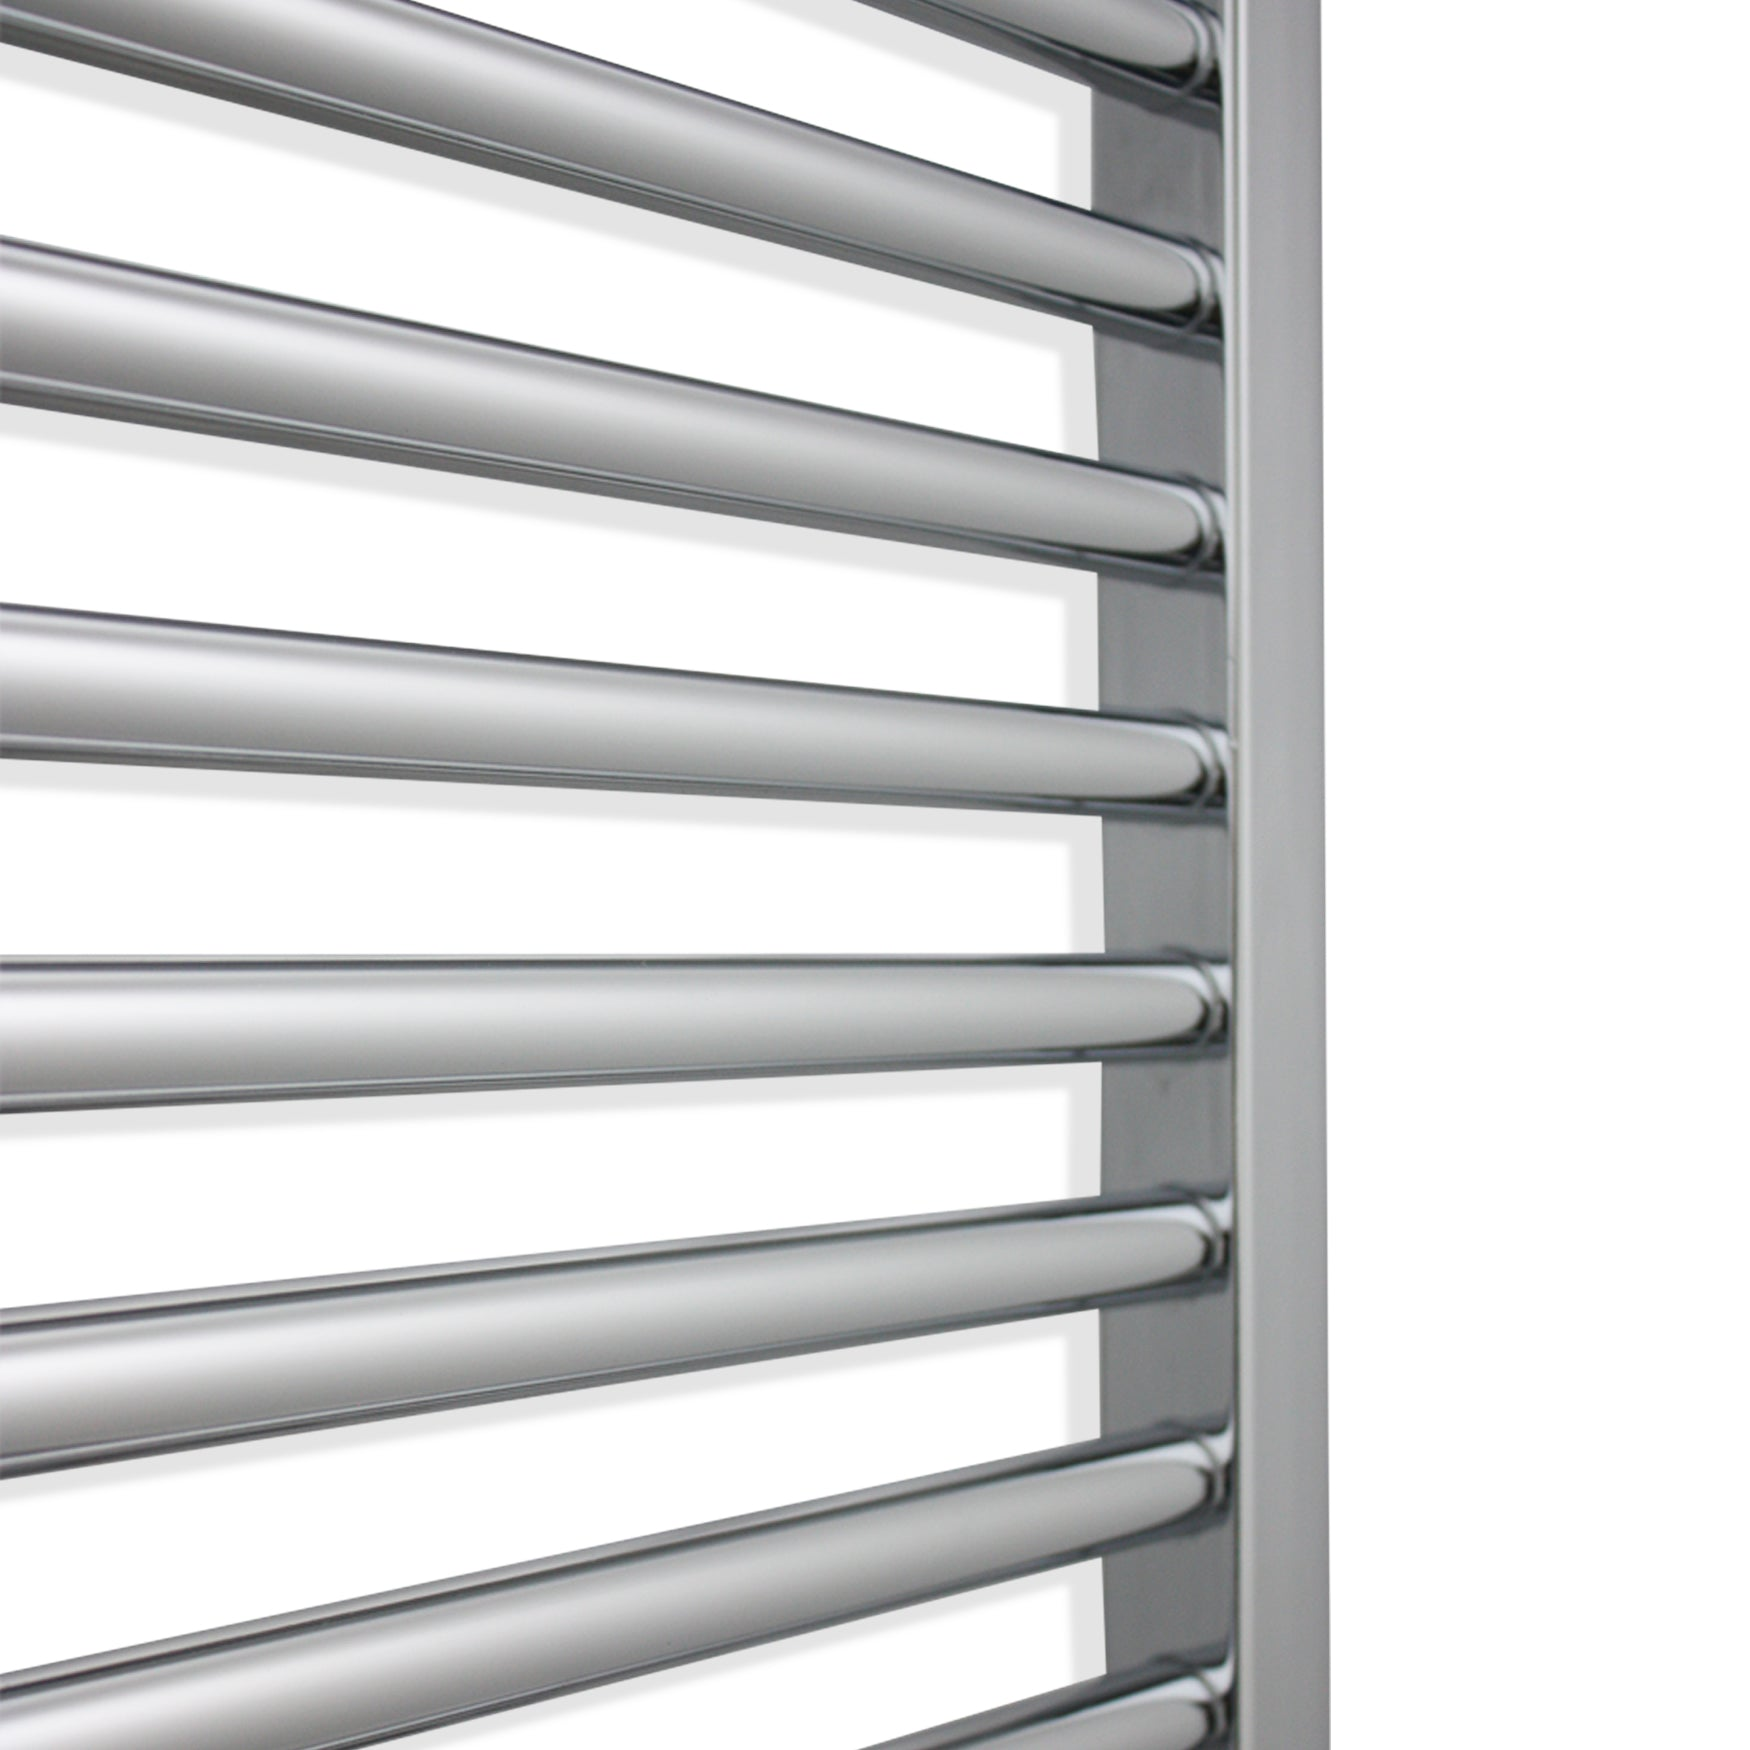 550mm Wide 1500mm High Straight Chrome Heated Towel Rail Radiator HTR Central Heating